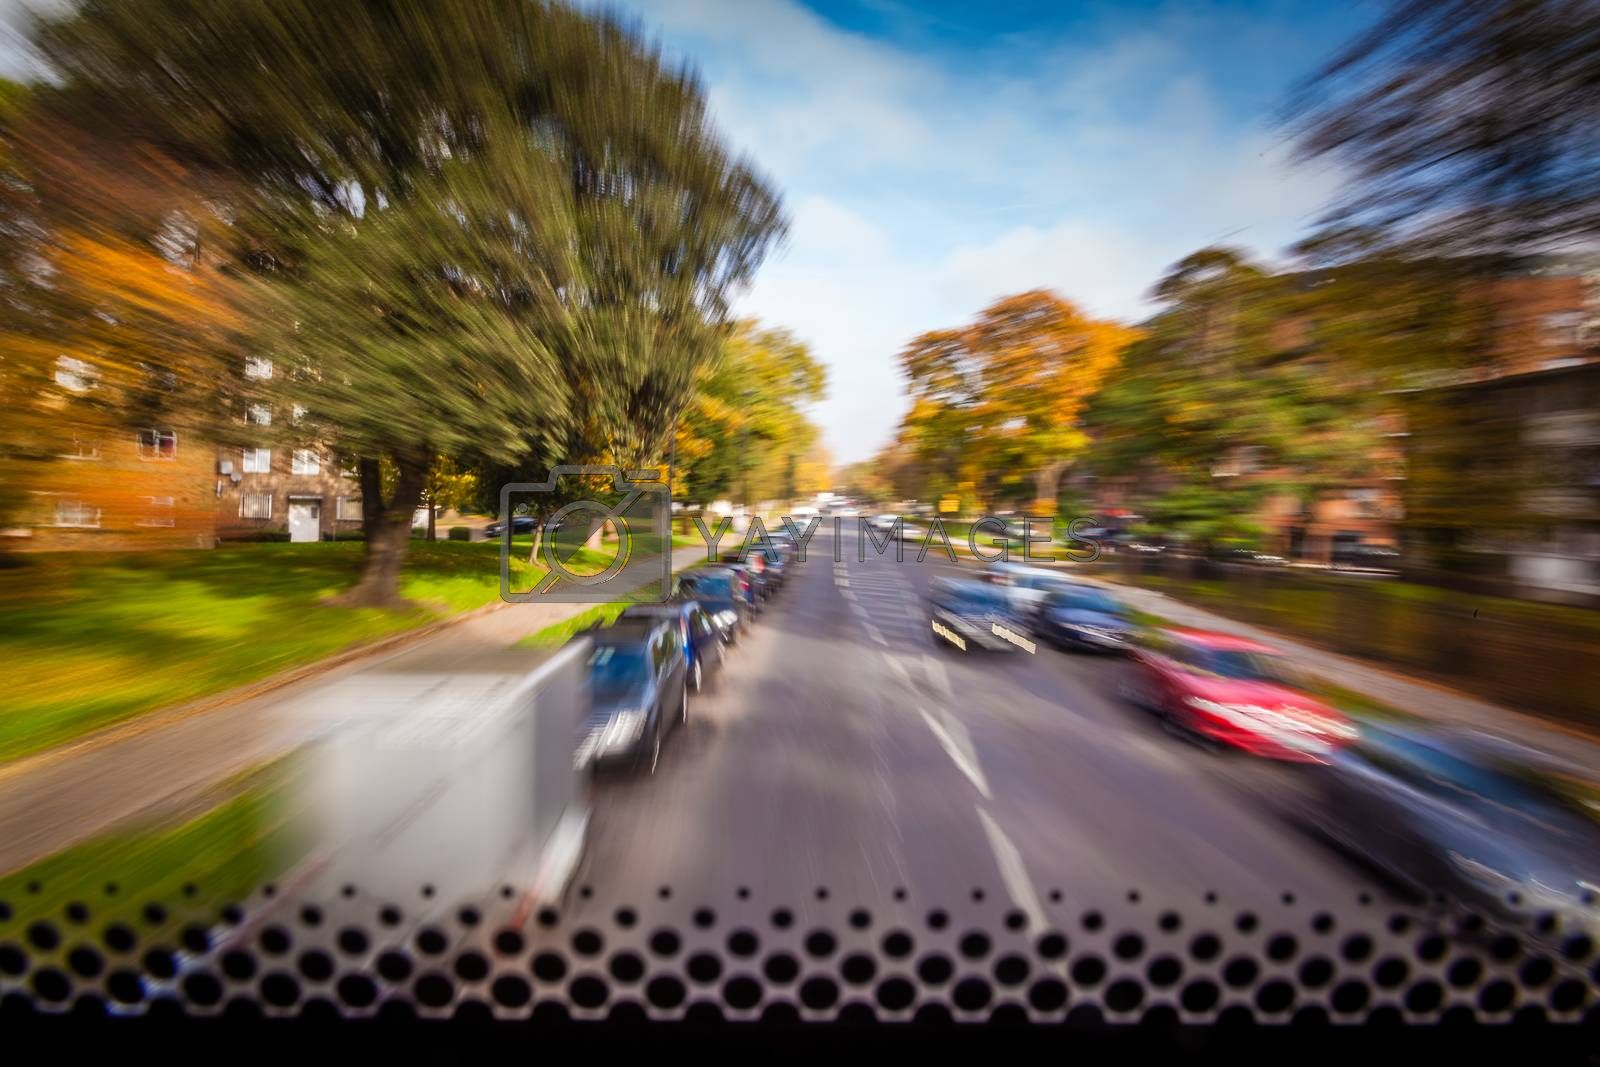 Dynamic picture of a London street taken from a front window of a doubledecker bus